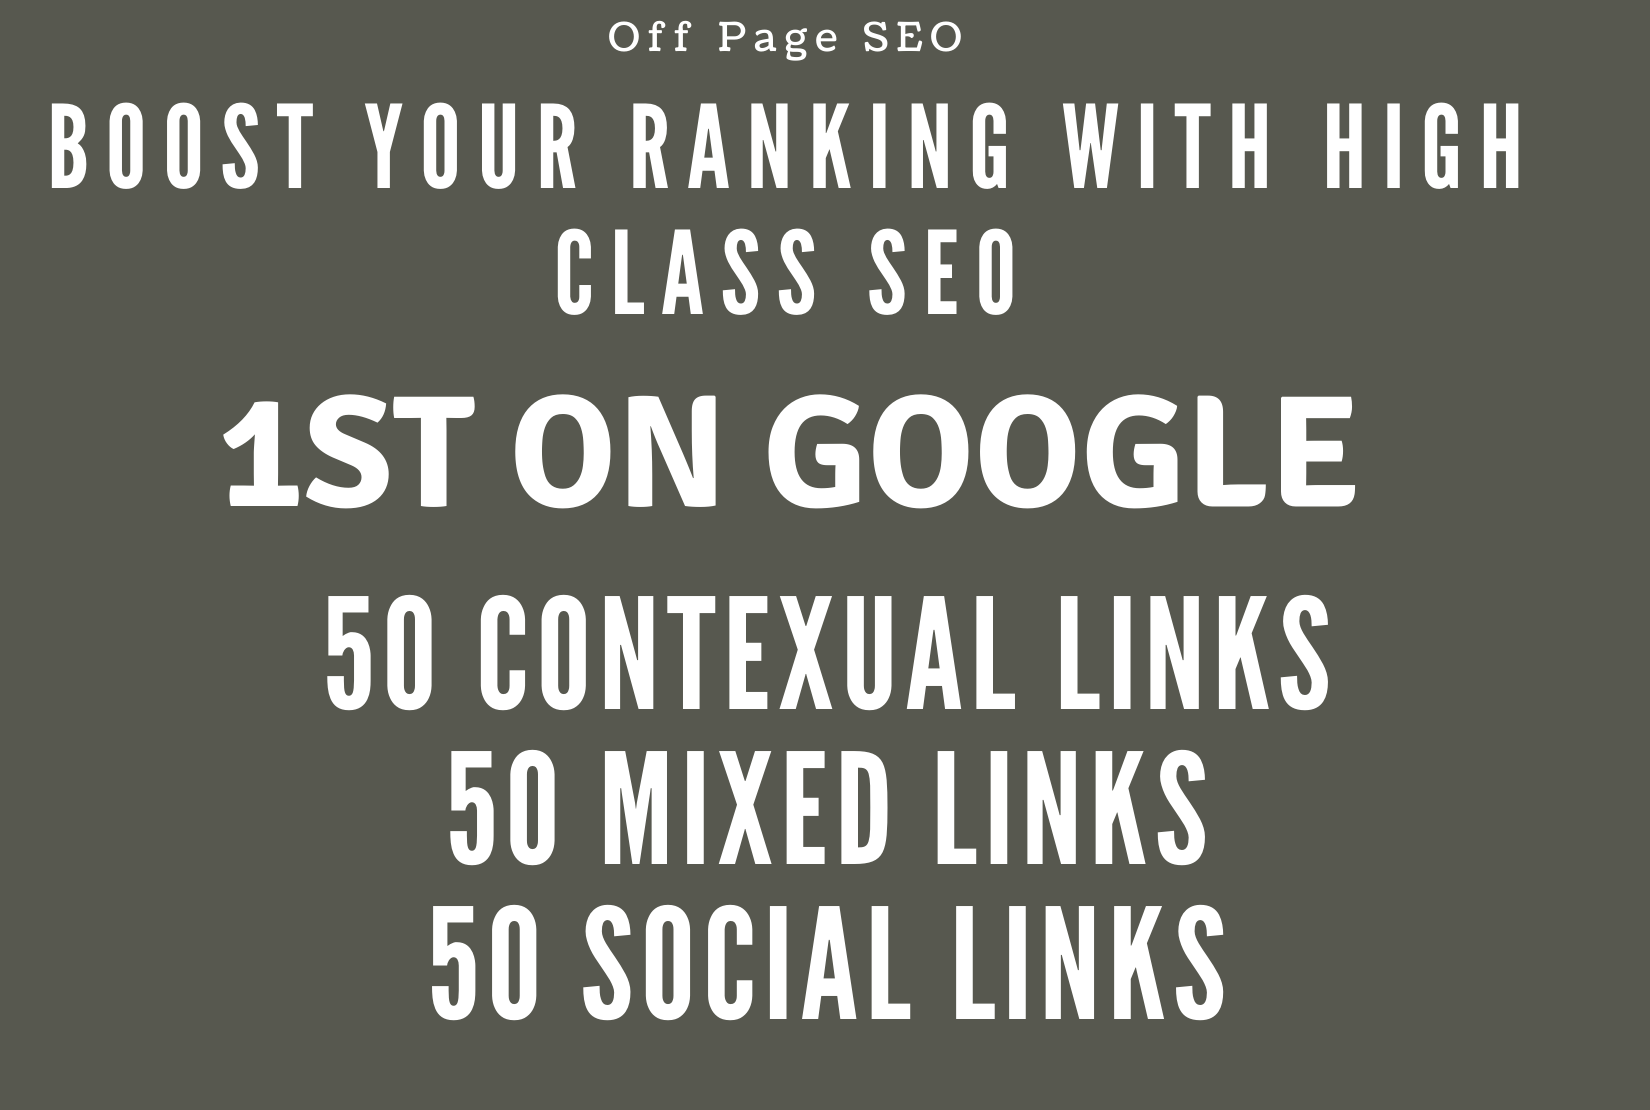 I will do off page SEO for 10x traffic